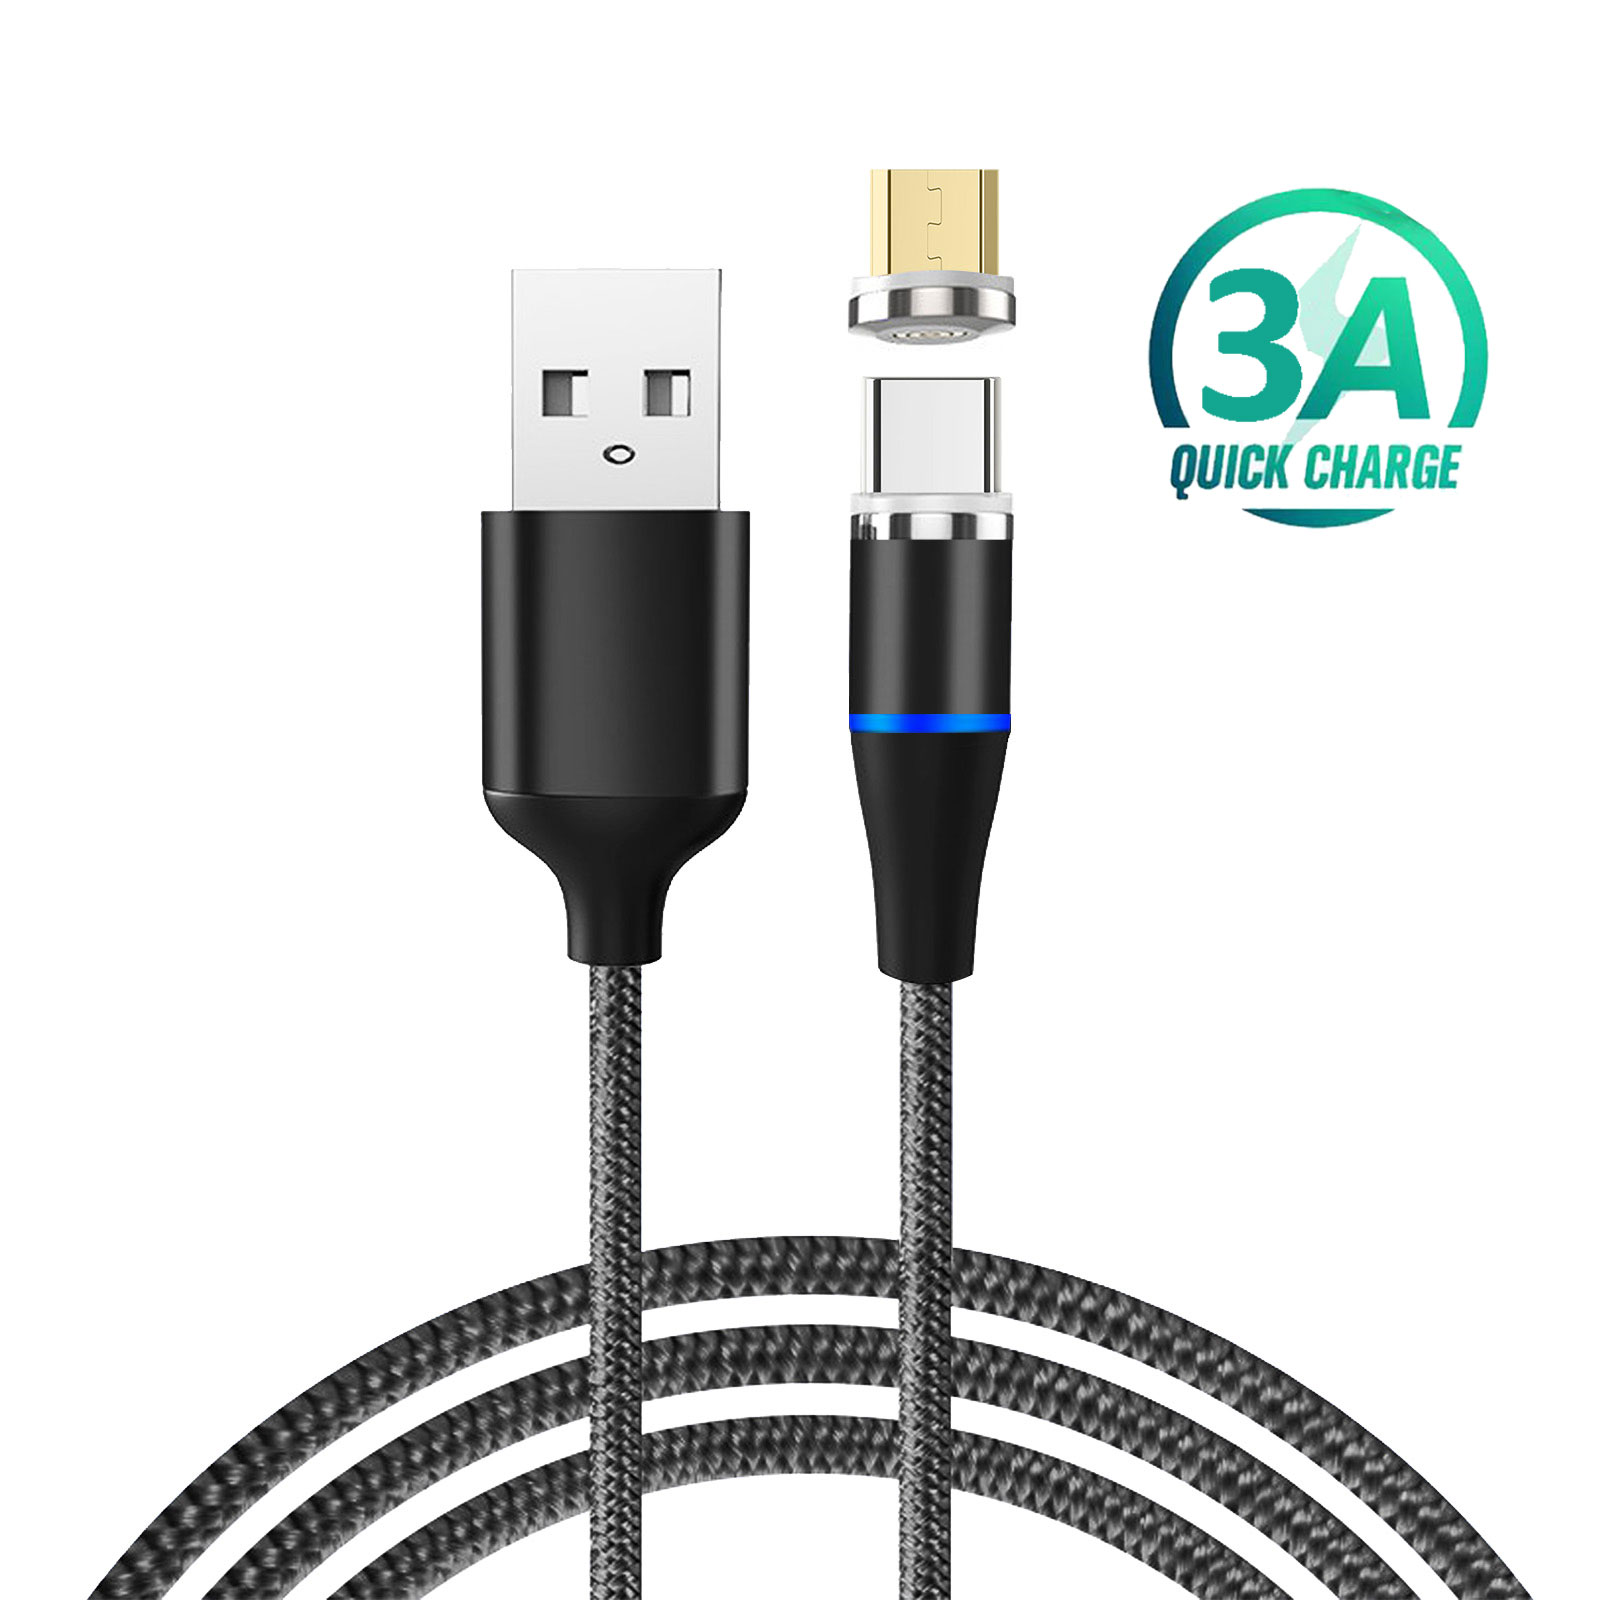 KMC-002 3A Fast Charging USB Cable Type C Mico Android Mobile Phone Charger Cable Cell Phone 3 in 1 Charging Magnetic USB Cable